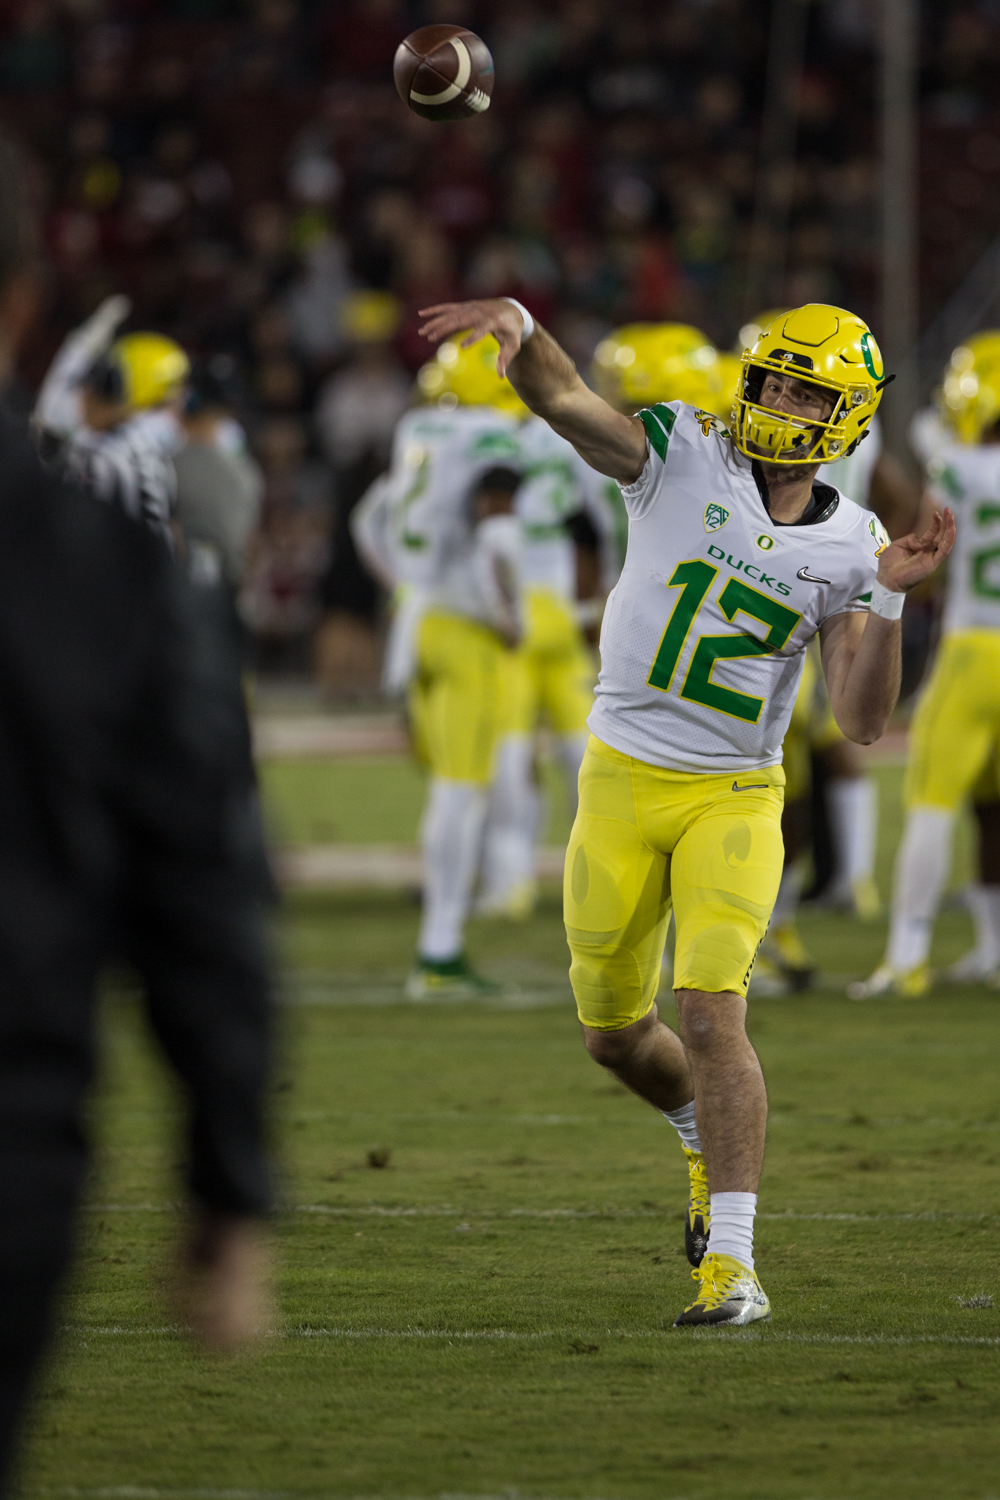 Oregon quarterback Taylor Alie (#12) warms up during the second half.  Oregon made a change at quarterback after a slow first quarter. The Oregon Ducks fell to the Stanford Cardinal 49-7 at Stanford Stadium, bringing their record to 4-3 for the season.  Photo by Austin Hicks, Oregon News Lab